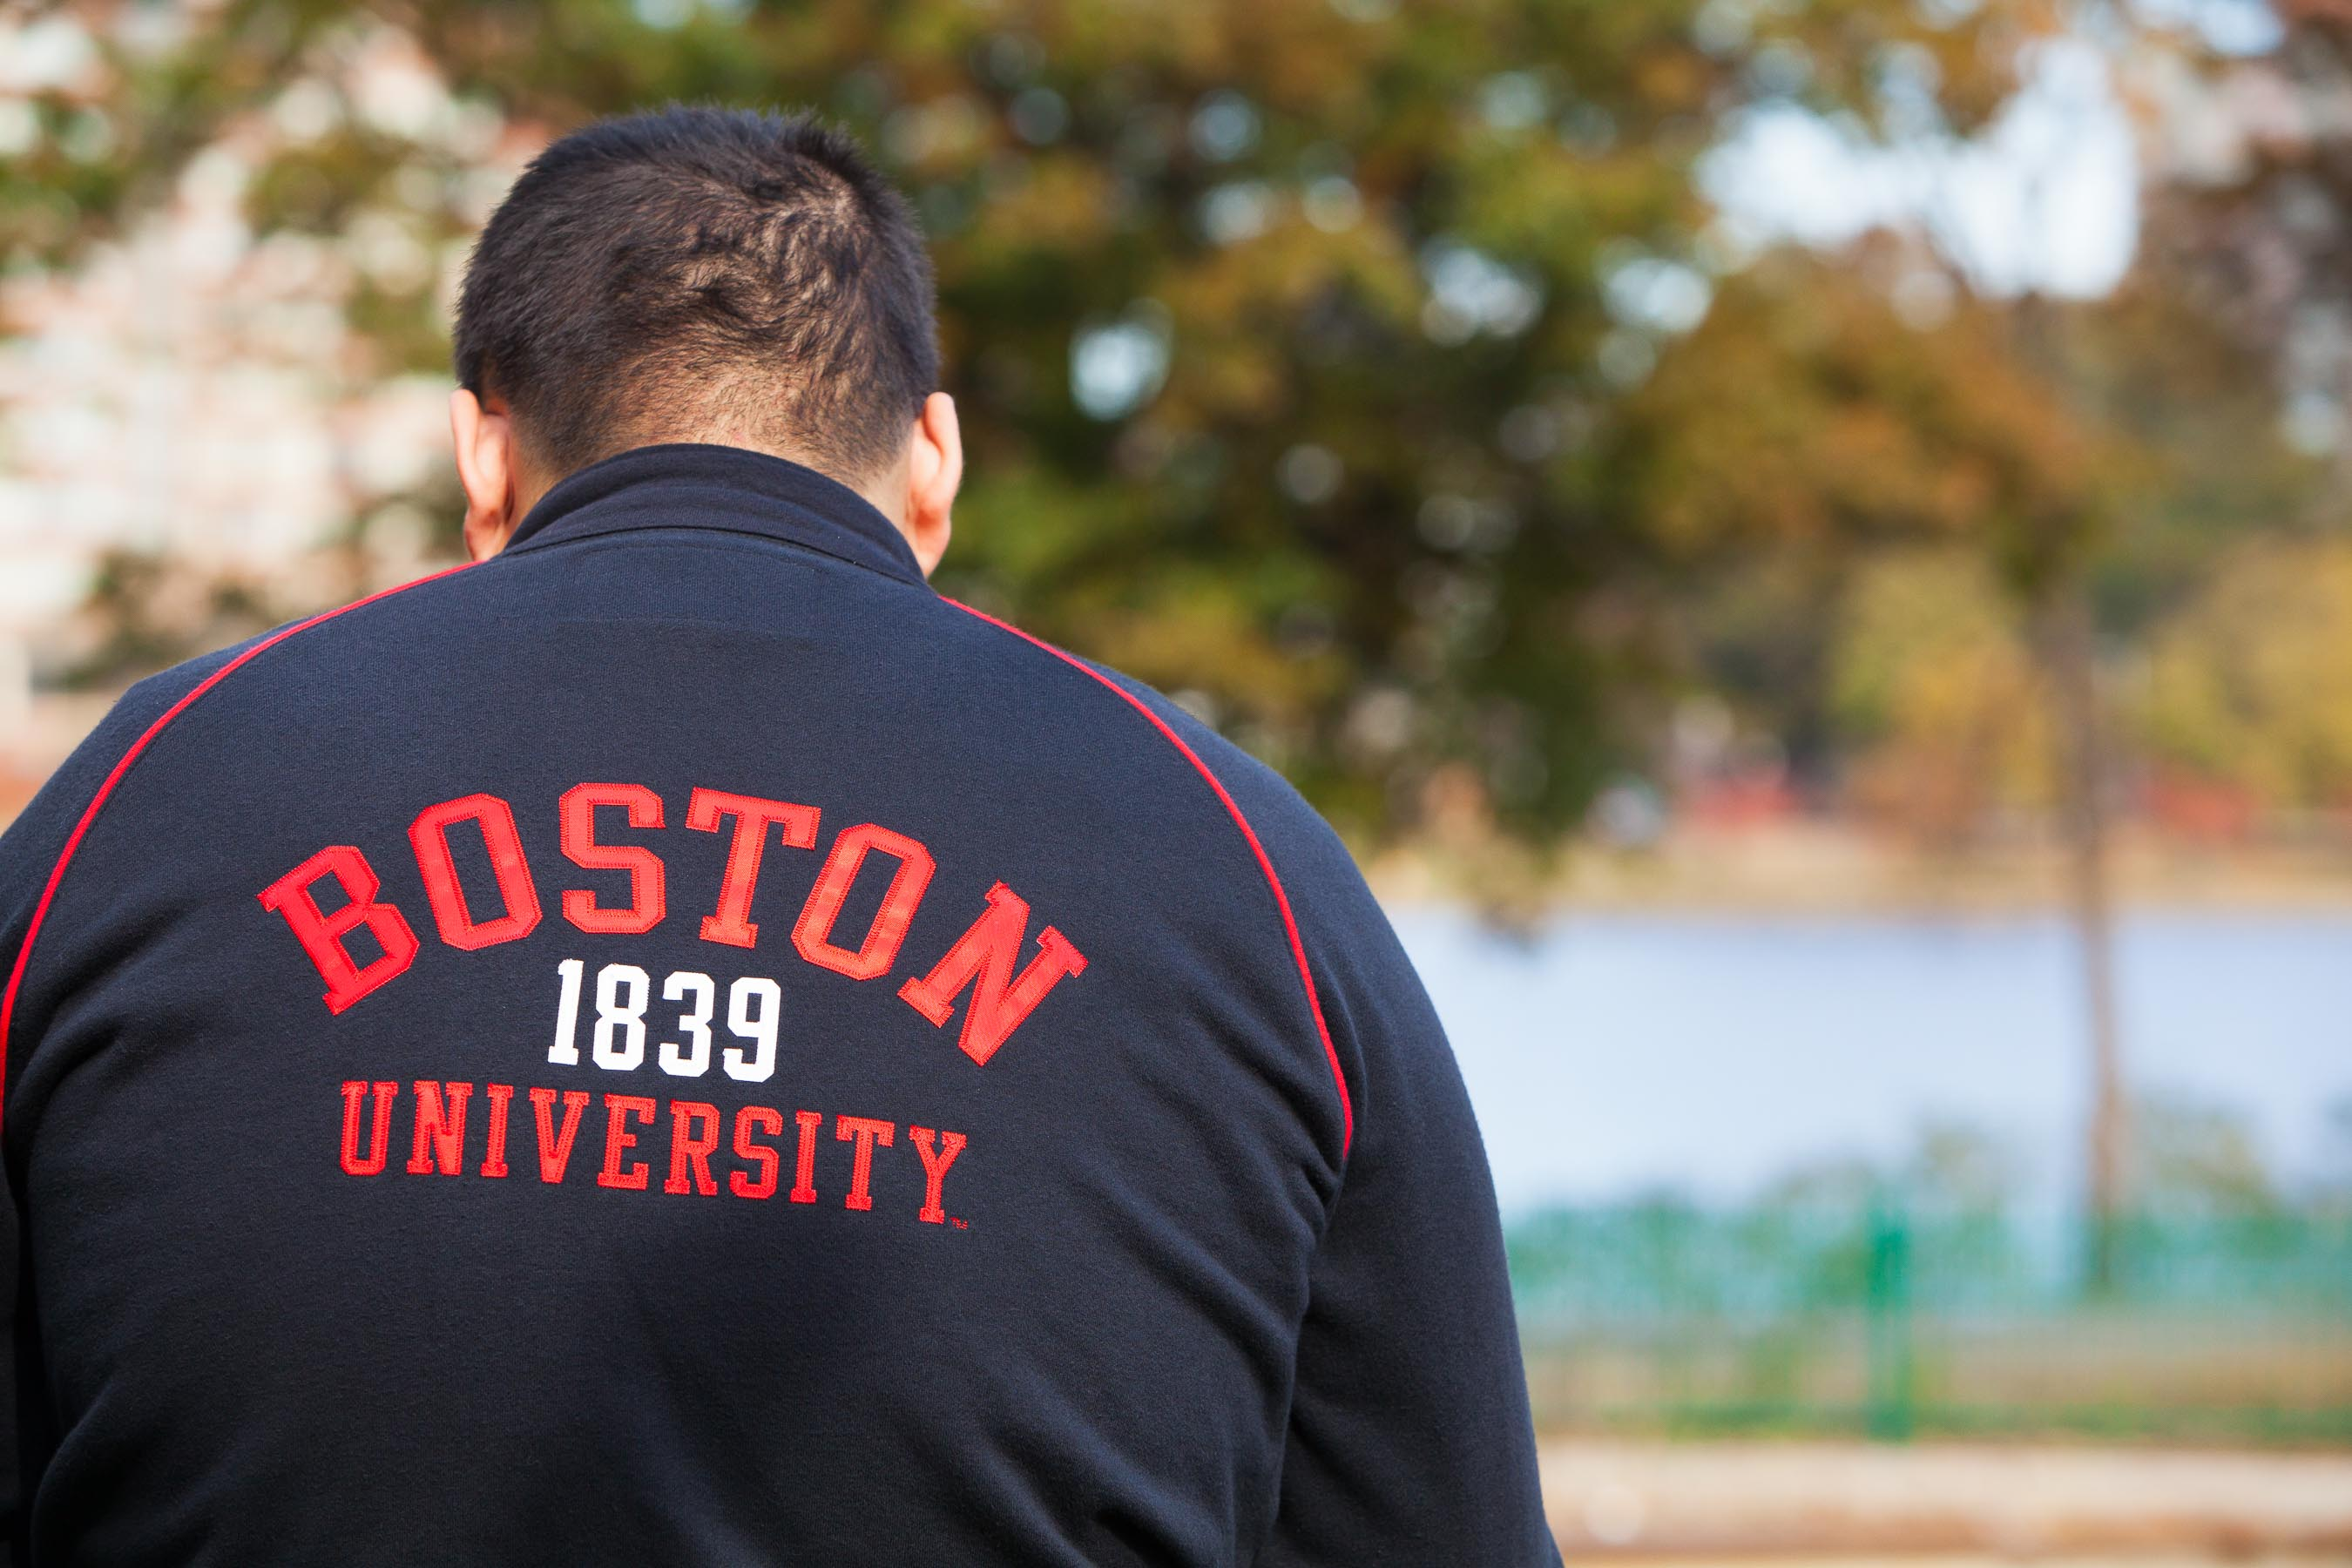 Boston Univeristy student jacket